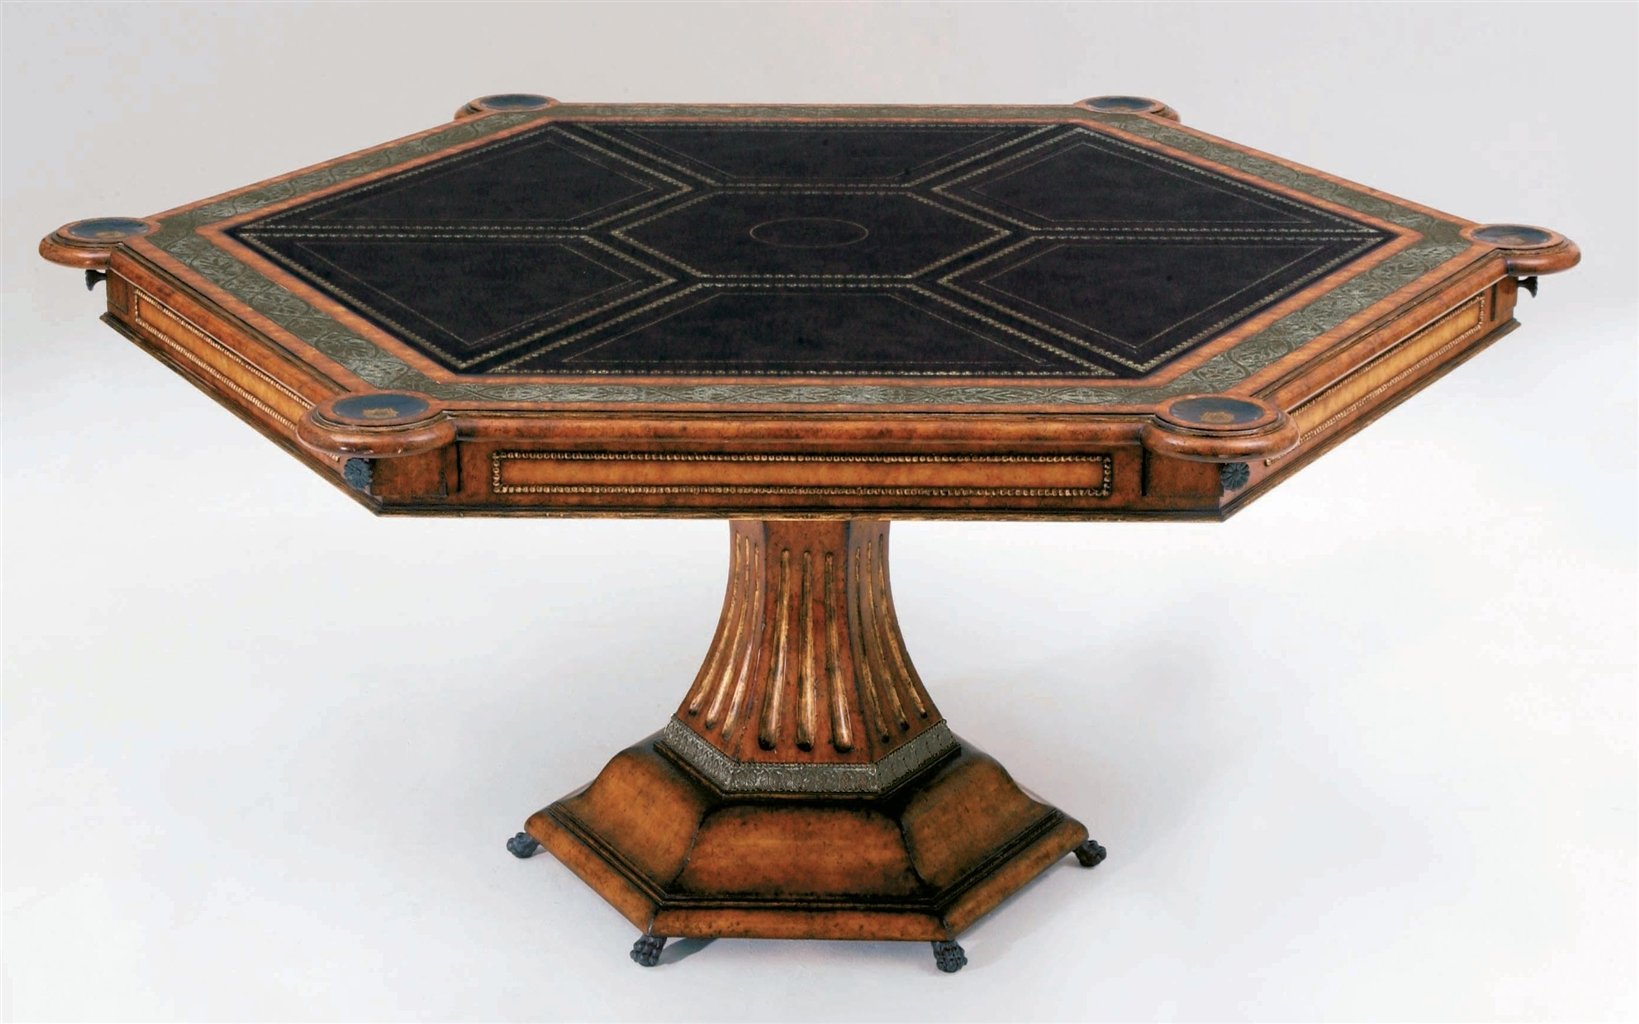 Merveilleux Game Card Tables U0026 Game Chairs Six Player Card Table. Luxury Furnishings